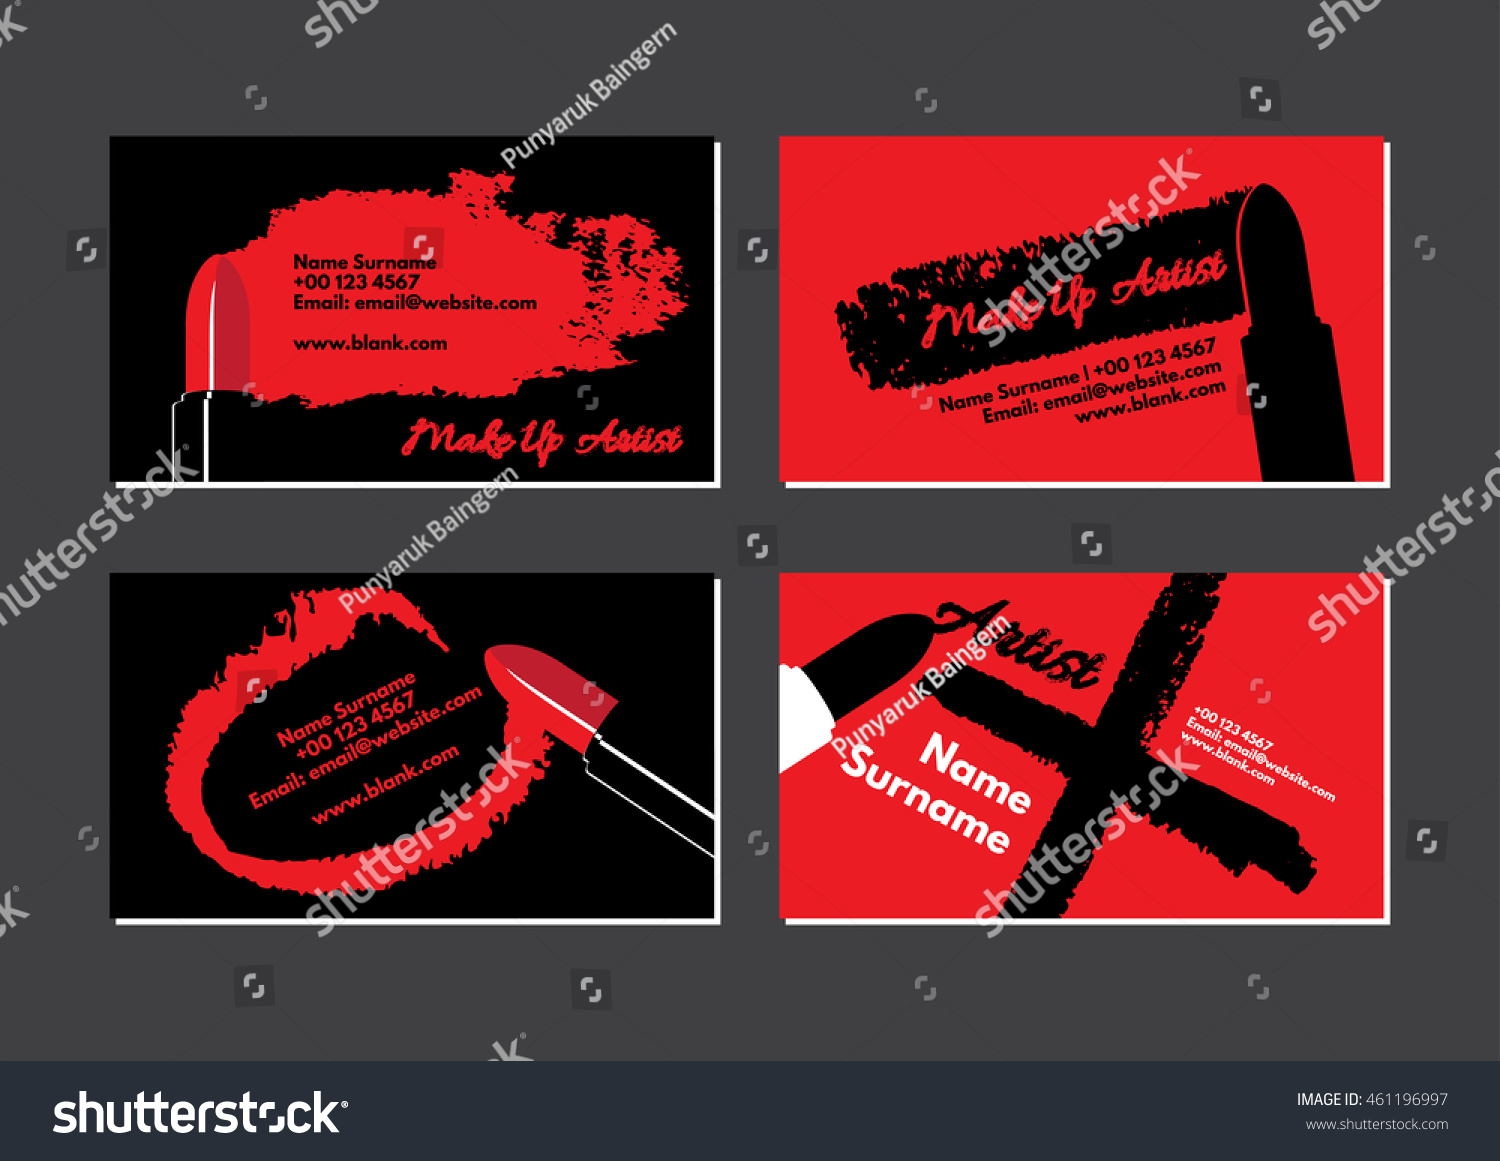 Business Card Make Artist Featuring Red Stock Vector 461196997 ...